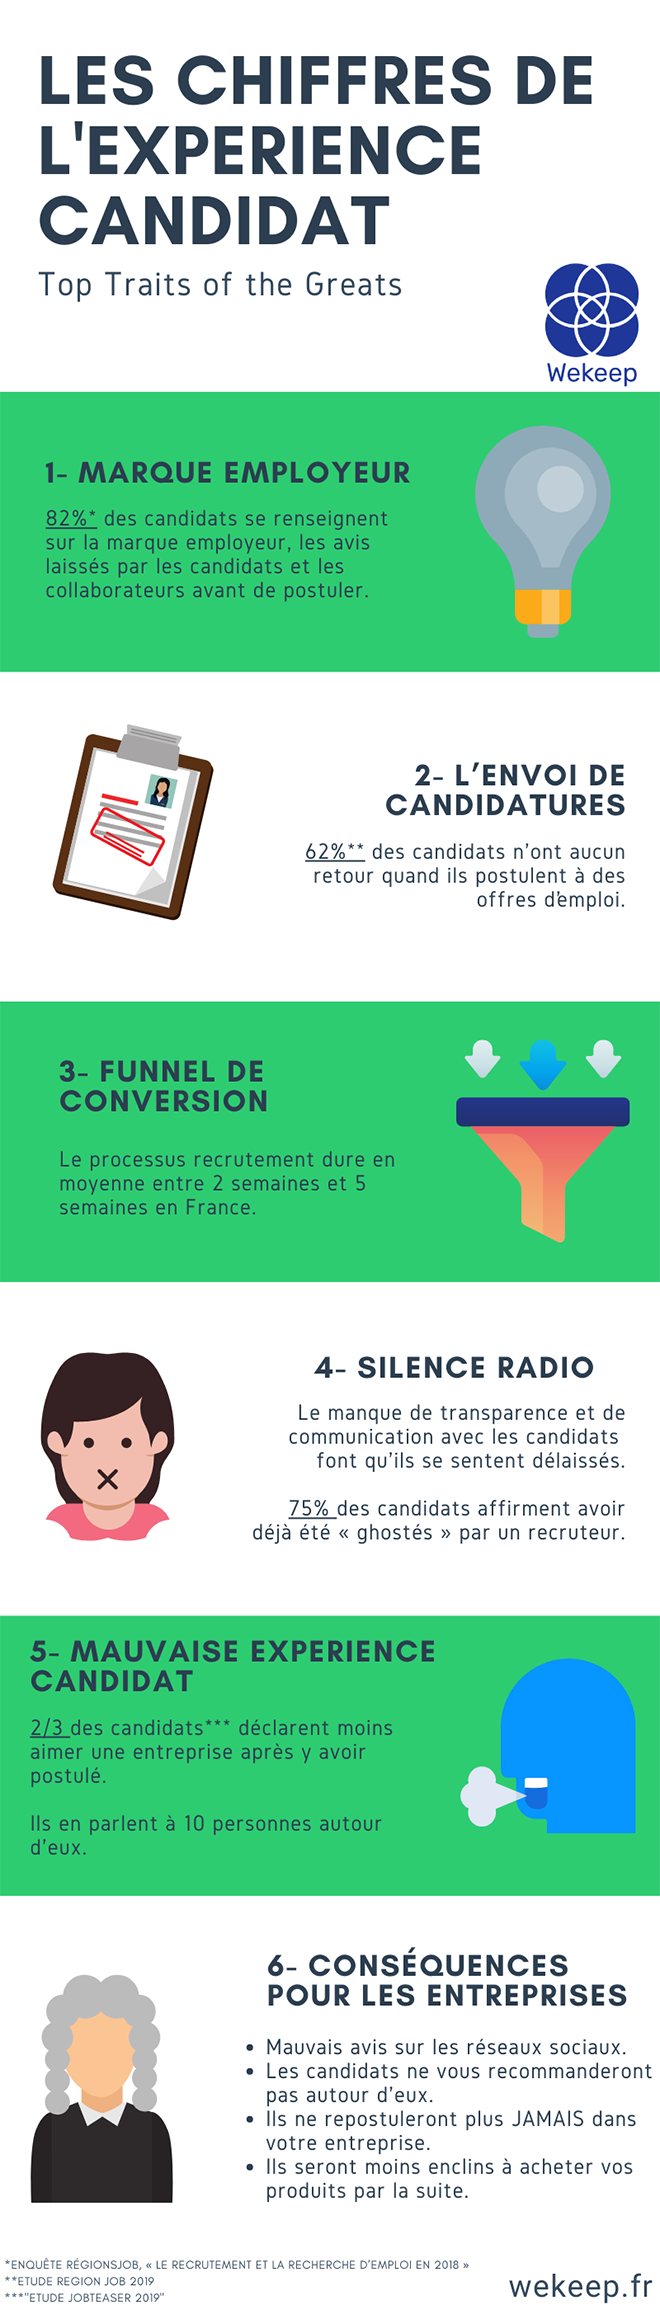 Infographie Expérience candidat WeKeep